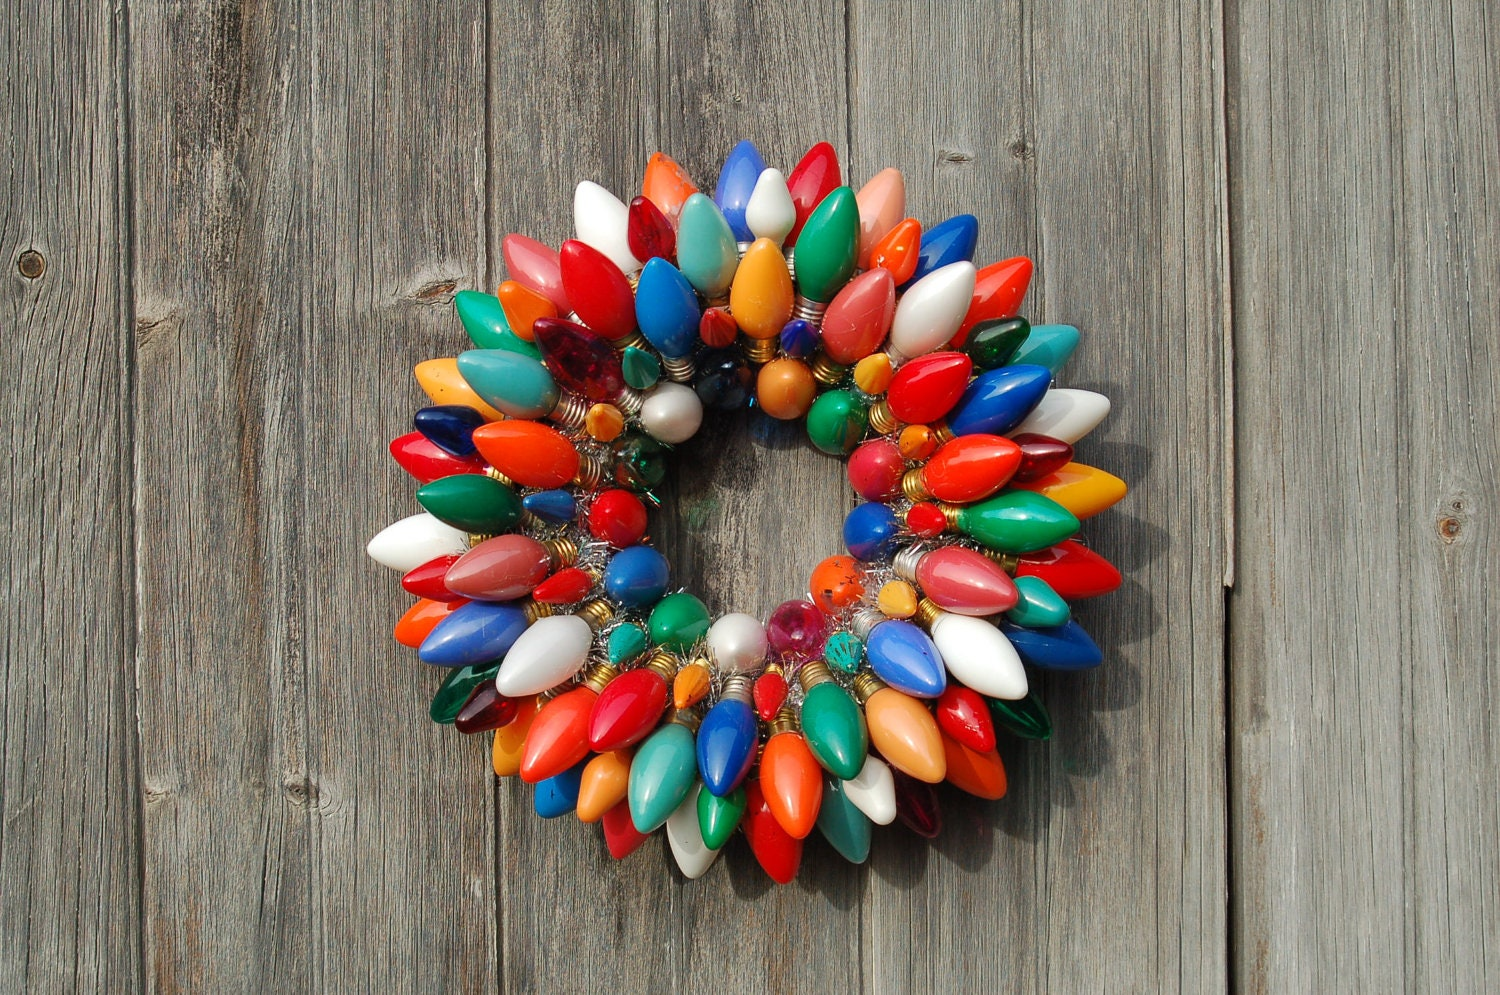 Etsy treasury tuesday what is your style of christmas wreath a sparkly life for me - Decorazioni natalizie con materiale di riciclo ...